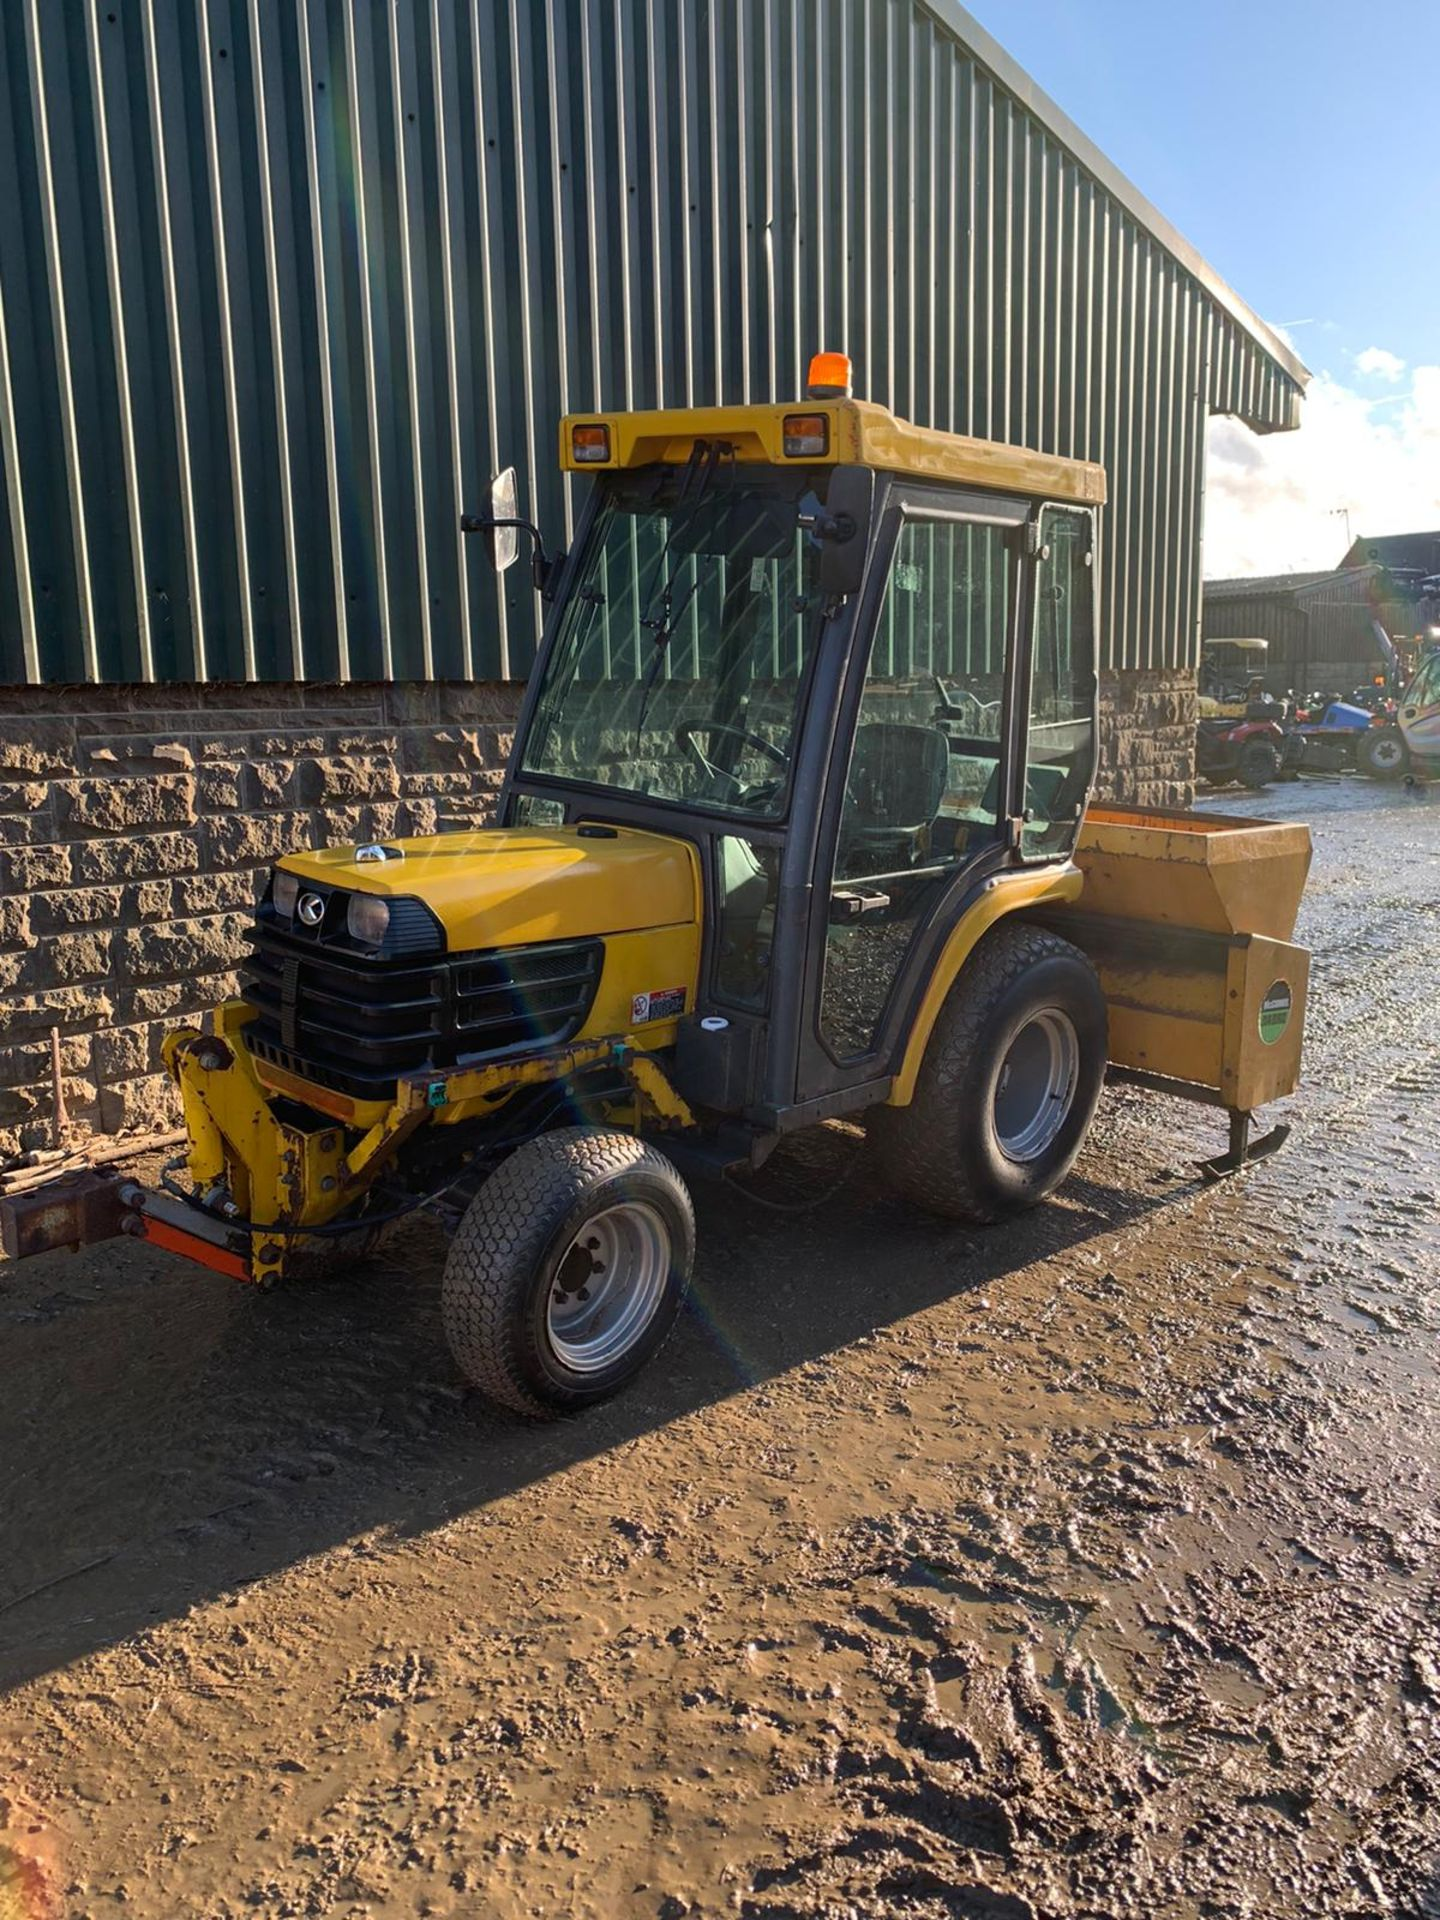 2005 KUBOTA B2110H COMPACT TRACTOR, RUNS, DRIVES AND WORKS, FULL GLASS CAB, ROAD LEGAL *PLUS VAT* - Image 2 of 6